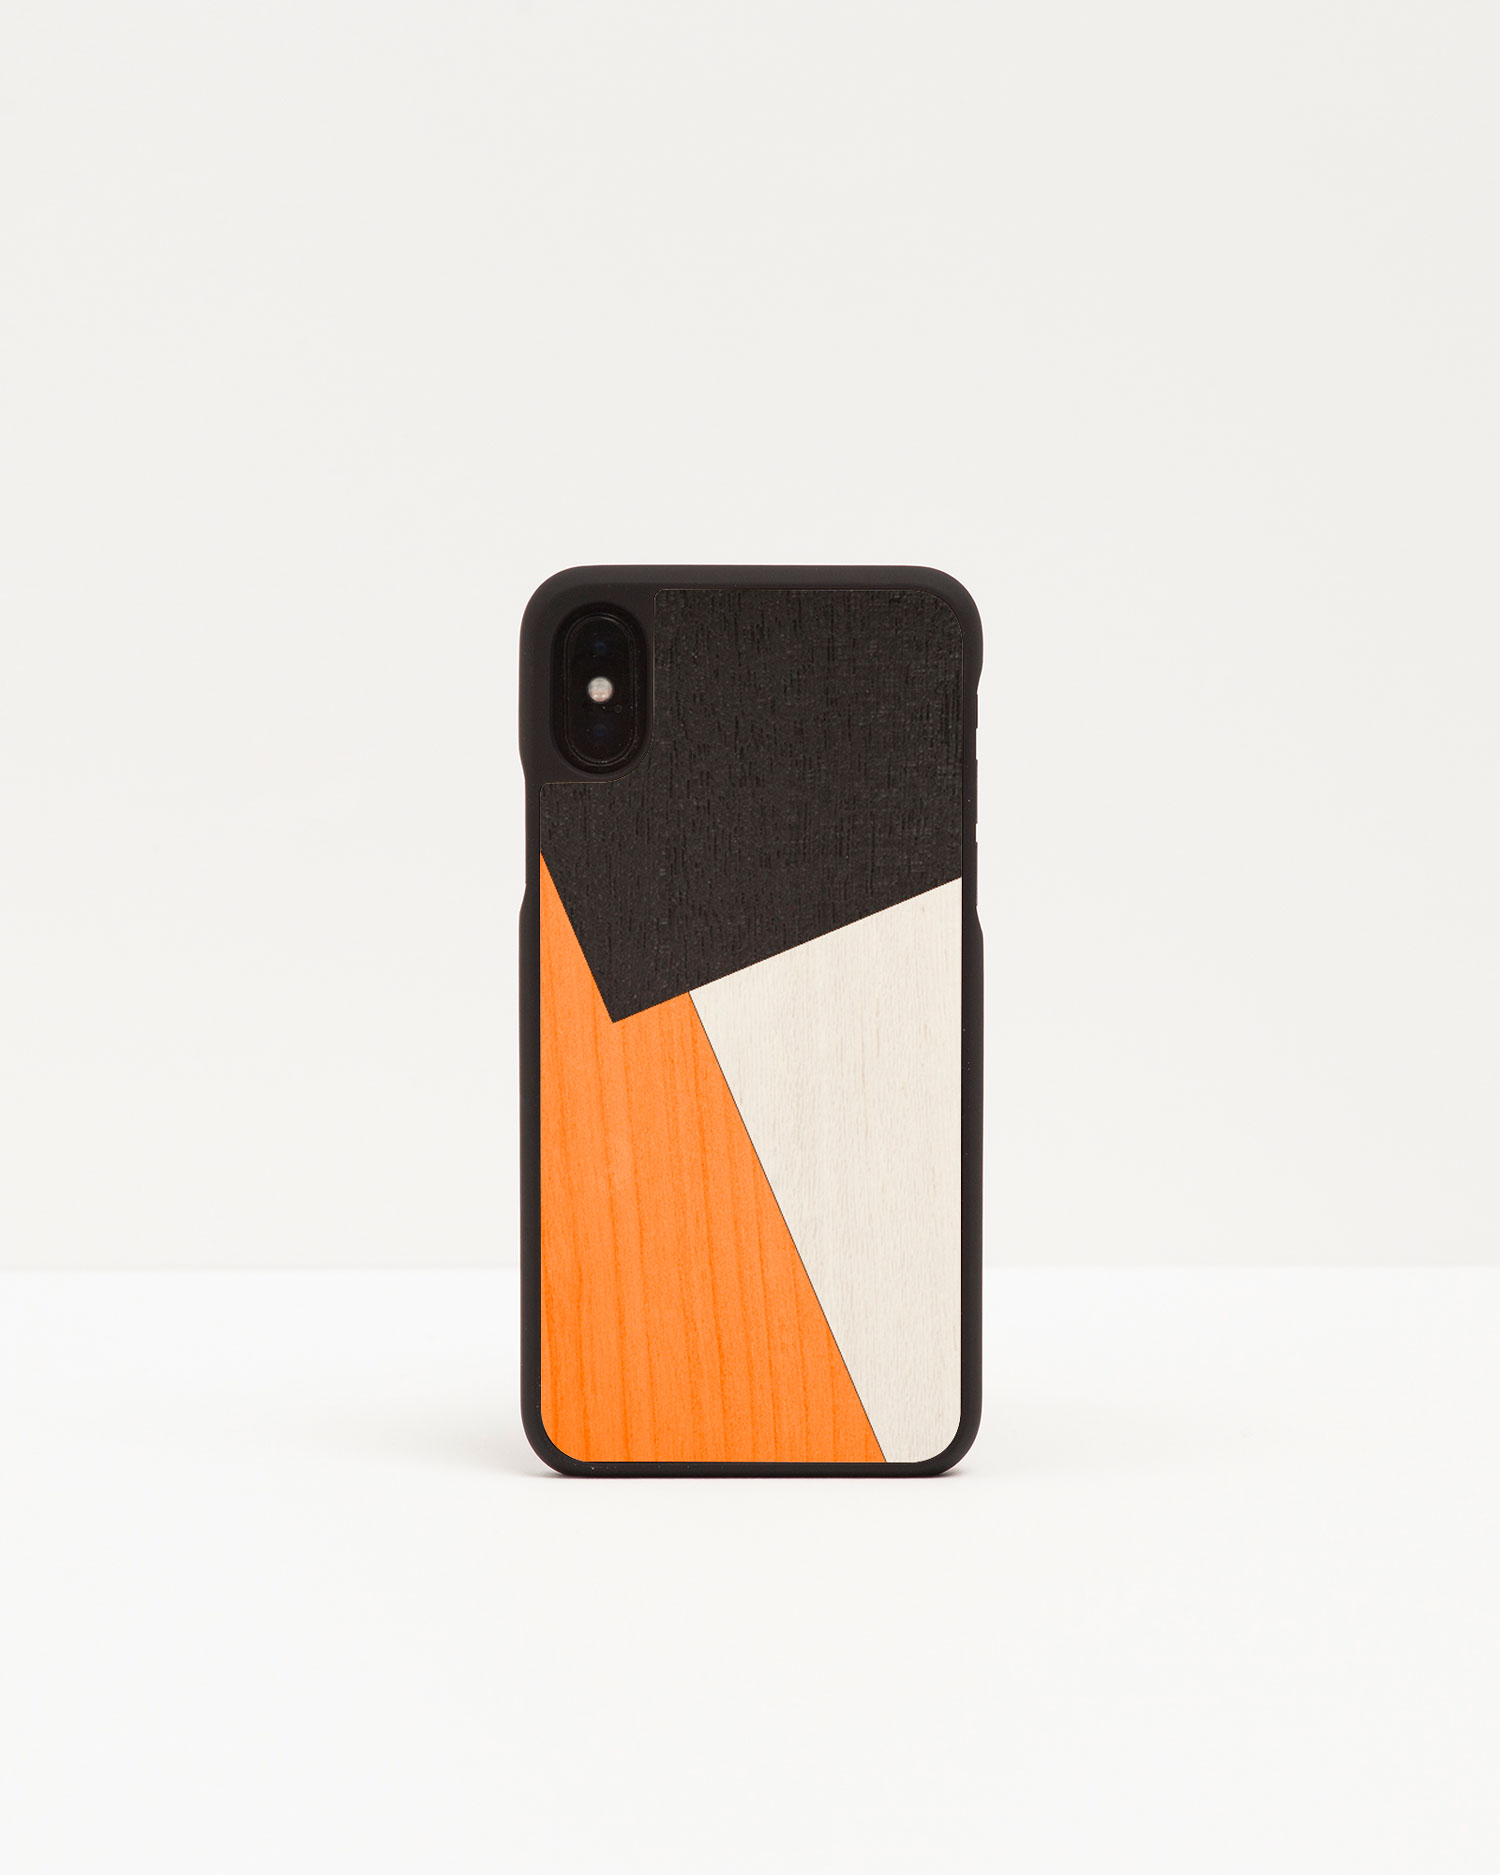 Wooden iPhone Cases by Wood'd